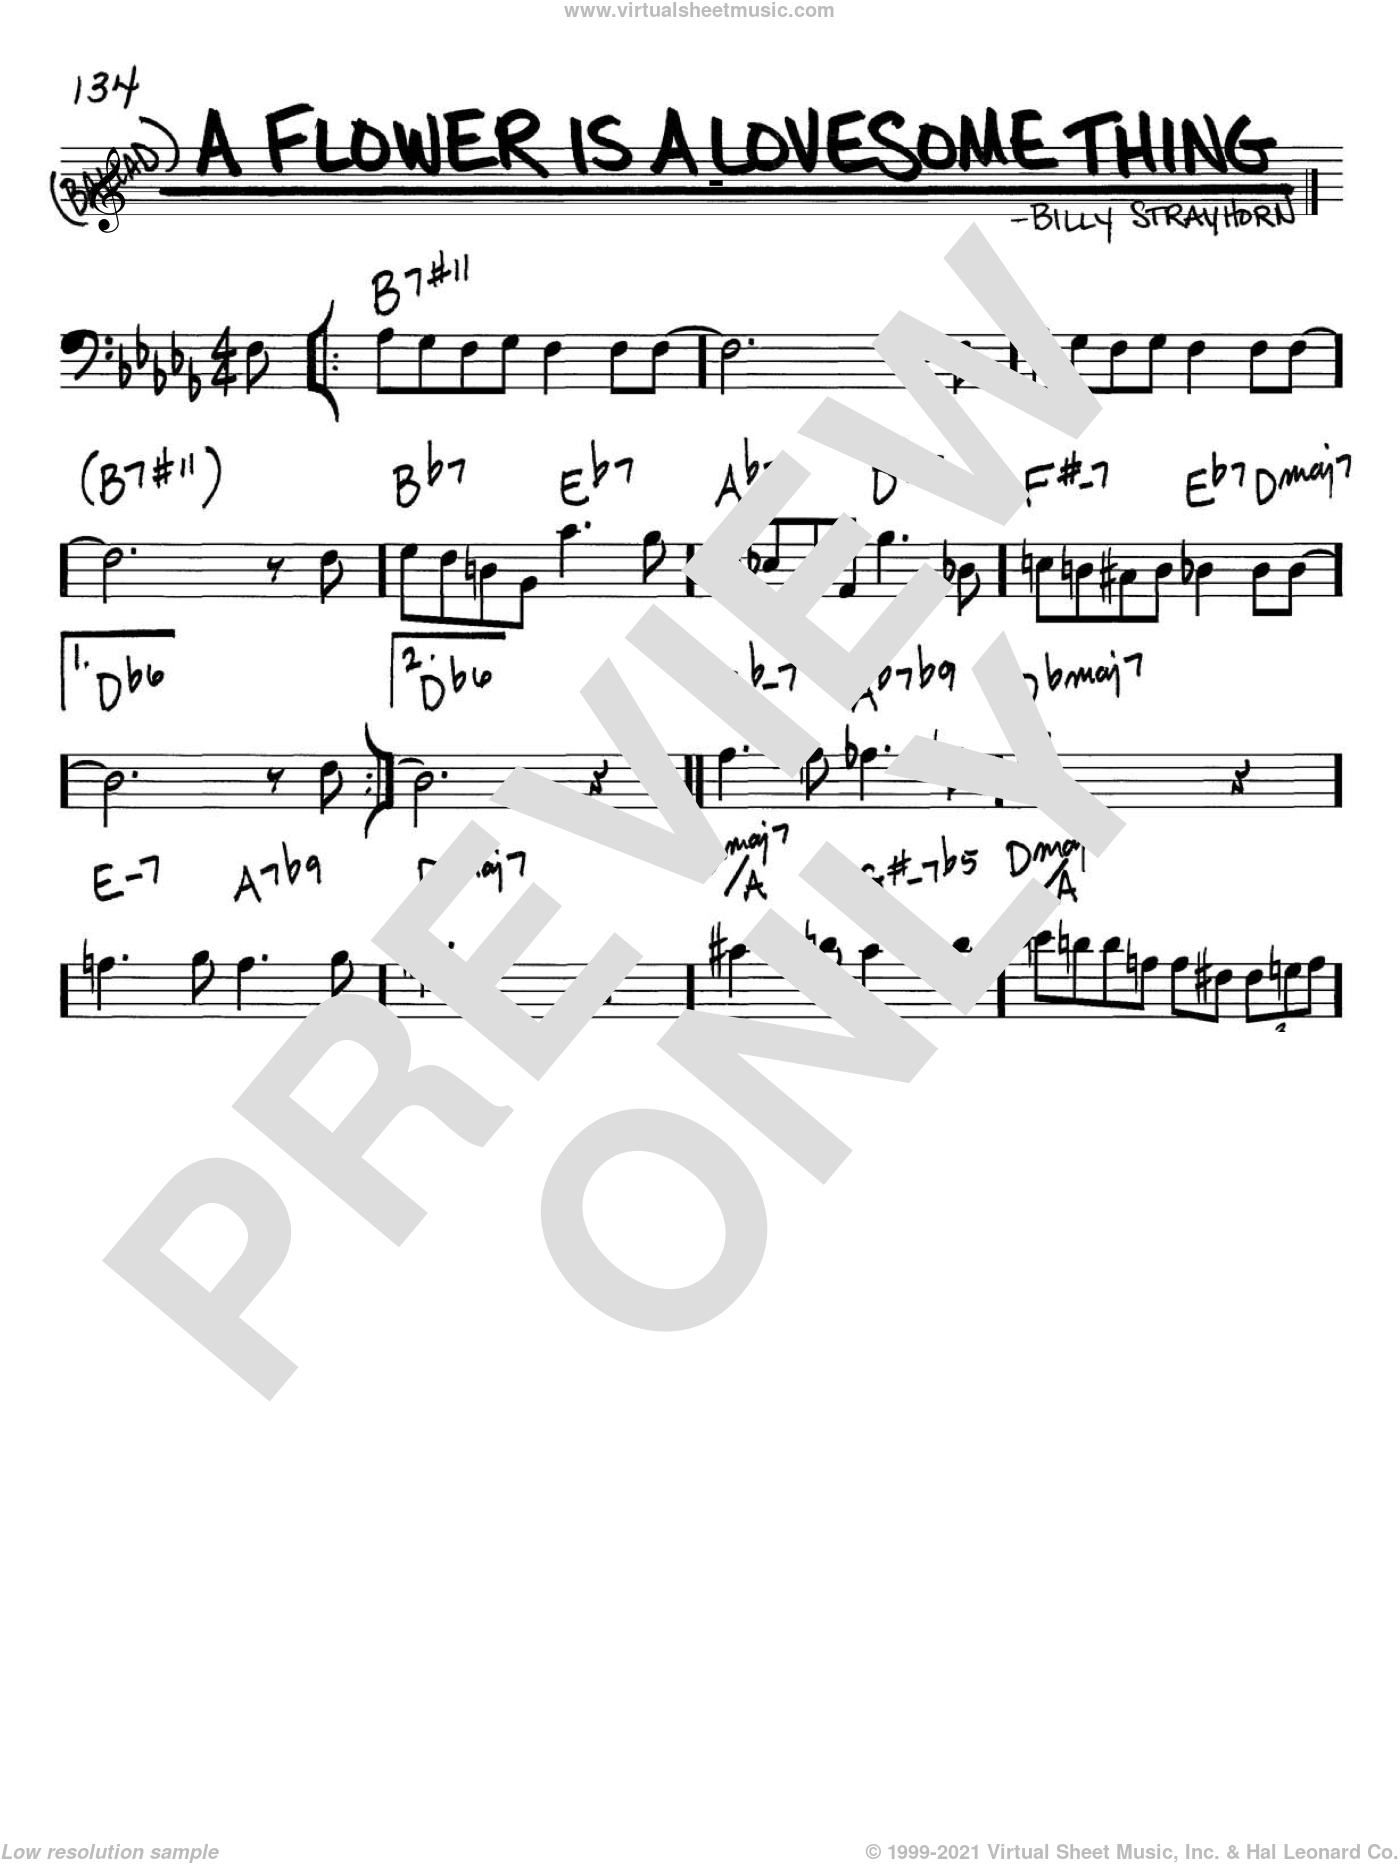 A Flower Is A Lovesome Thing sheet music for voice and other instruments (Bass Clef ) by Billy Strayhorn. Score Image Preview.